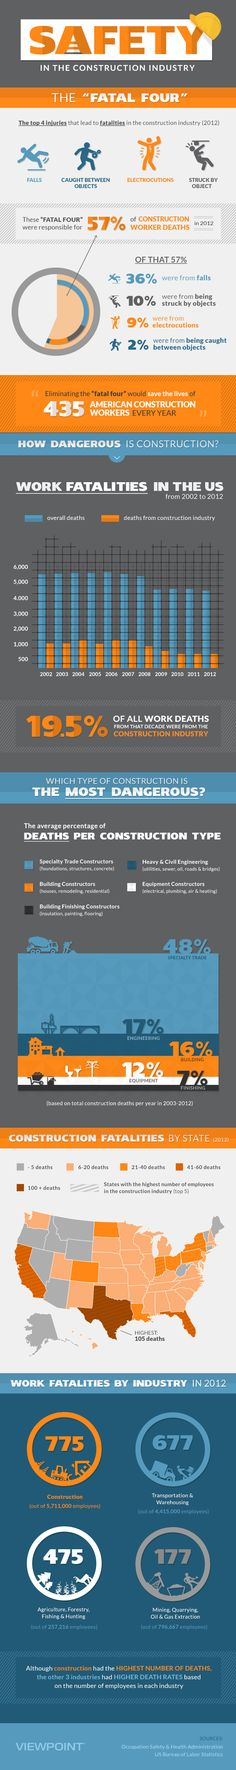 GRAPHIC DESIGN – INFOGRAPHIC – construction safety infographic by viewpoint, formerly maxwell systems.